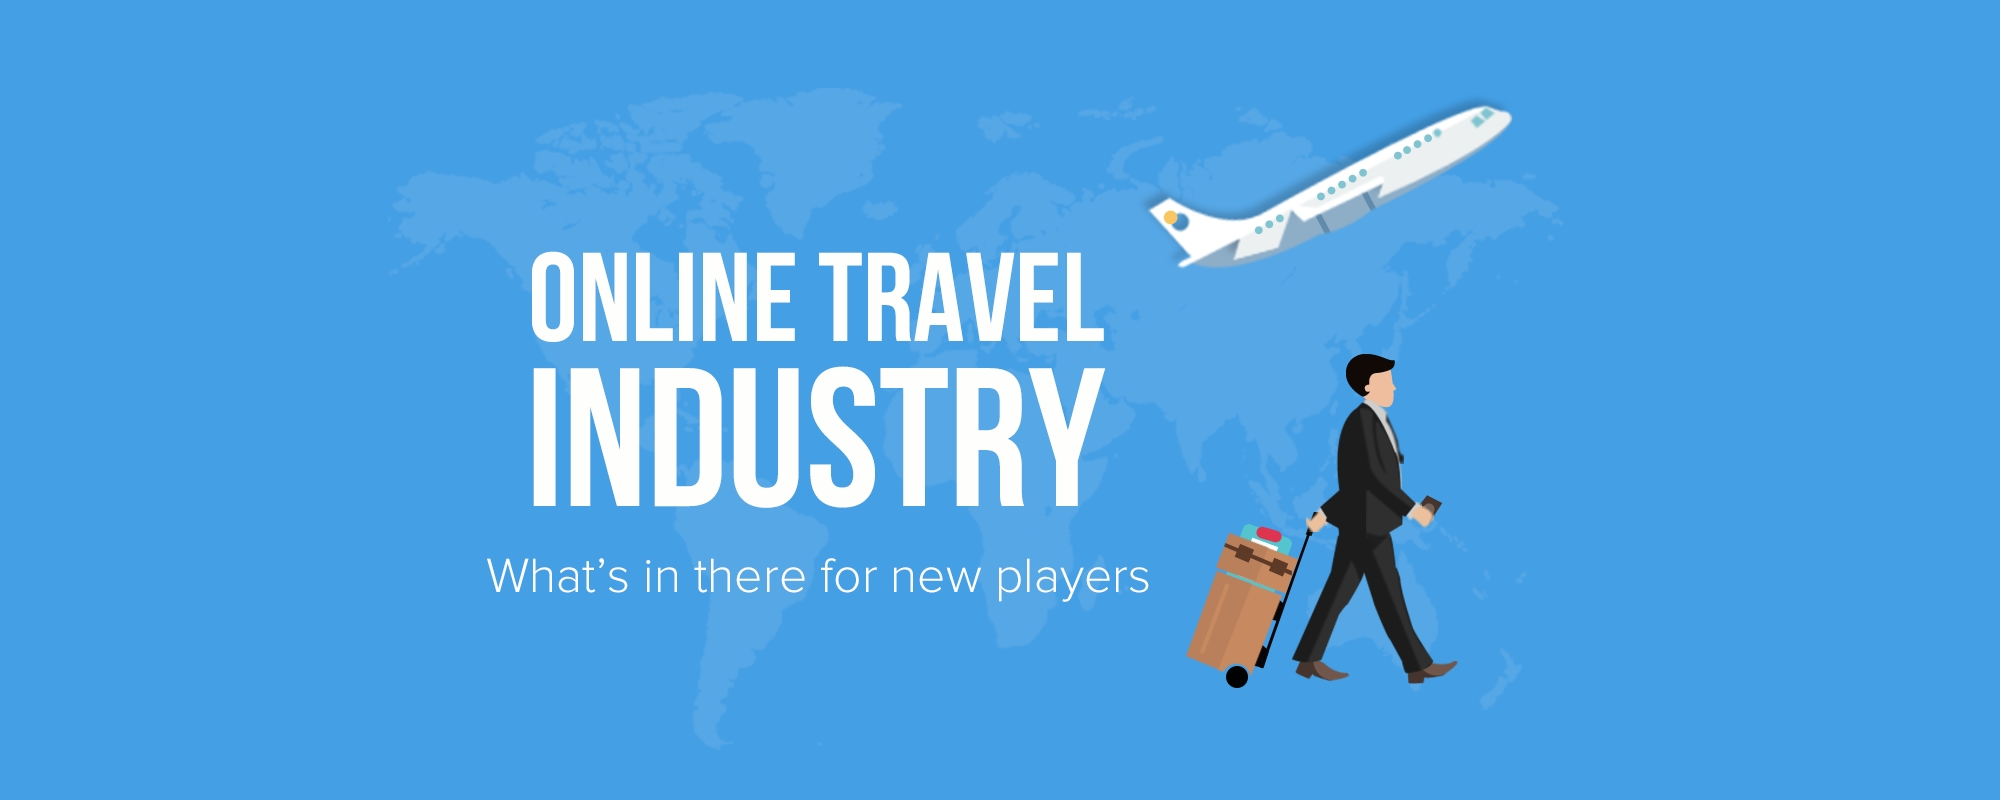 10 Cute Business Ideas For The Future travel industry growth statistics business ideas future 2020